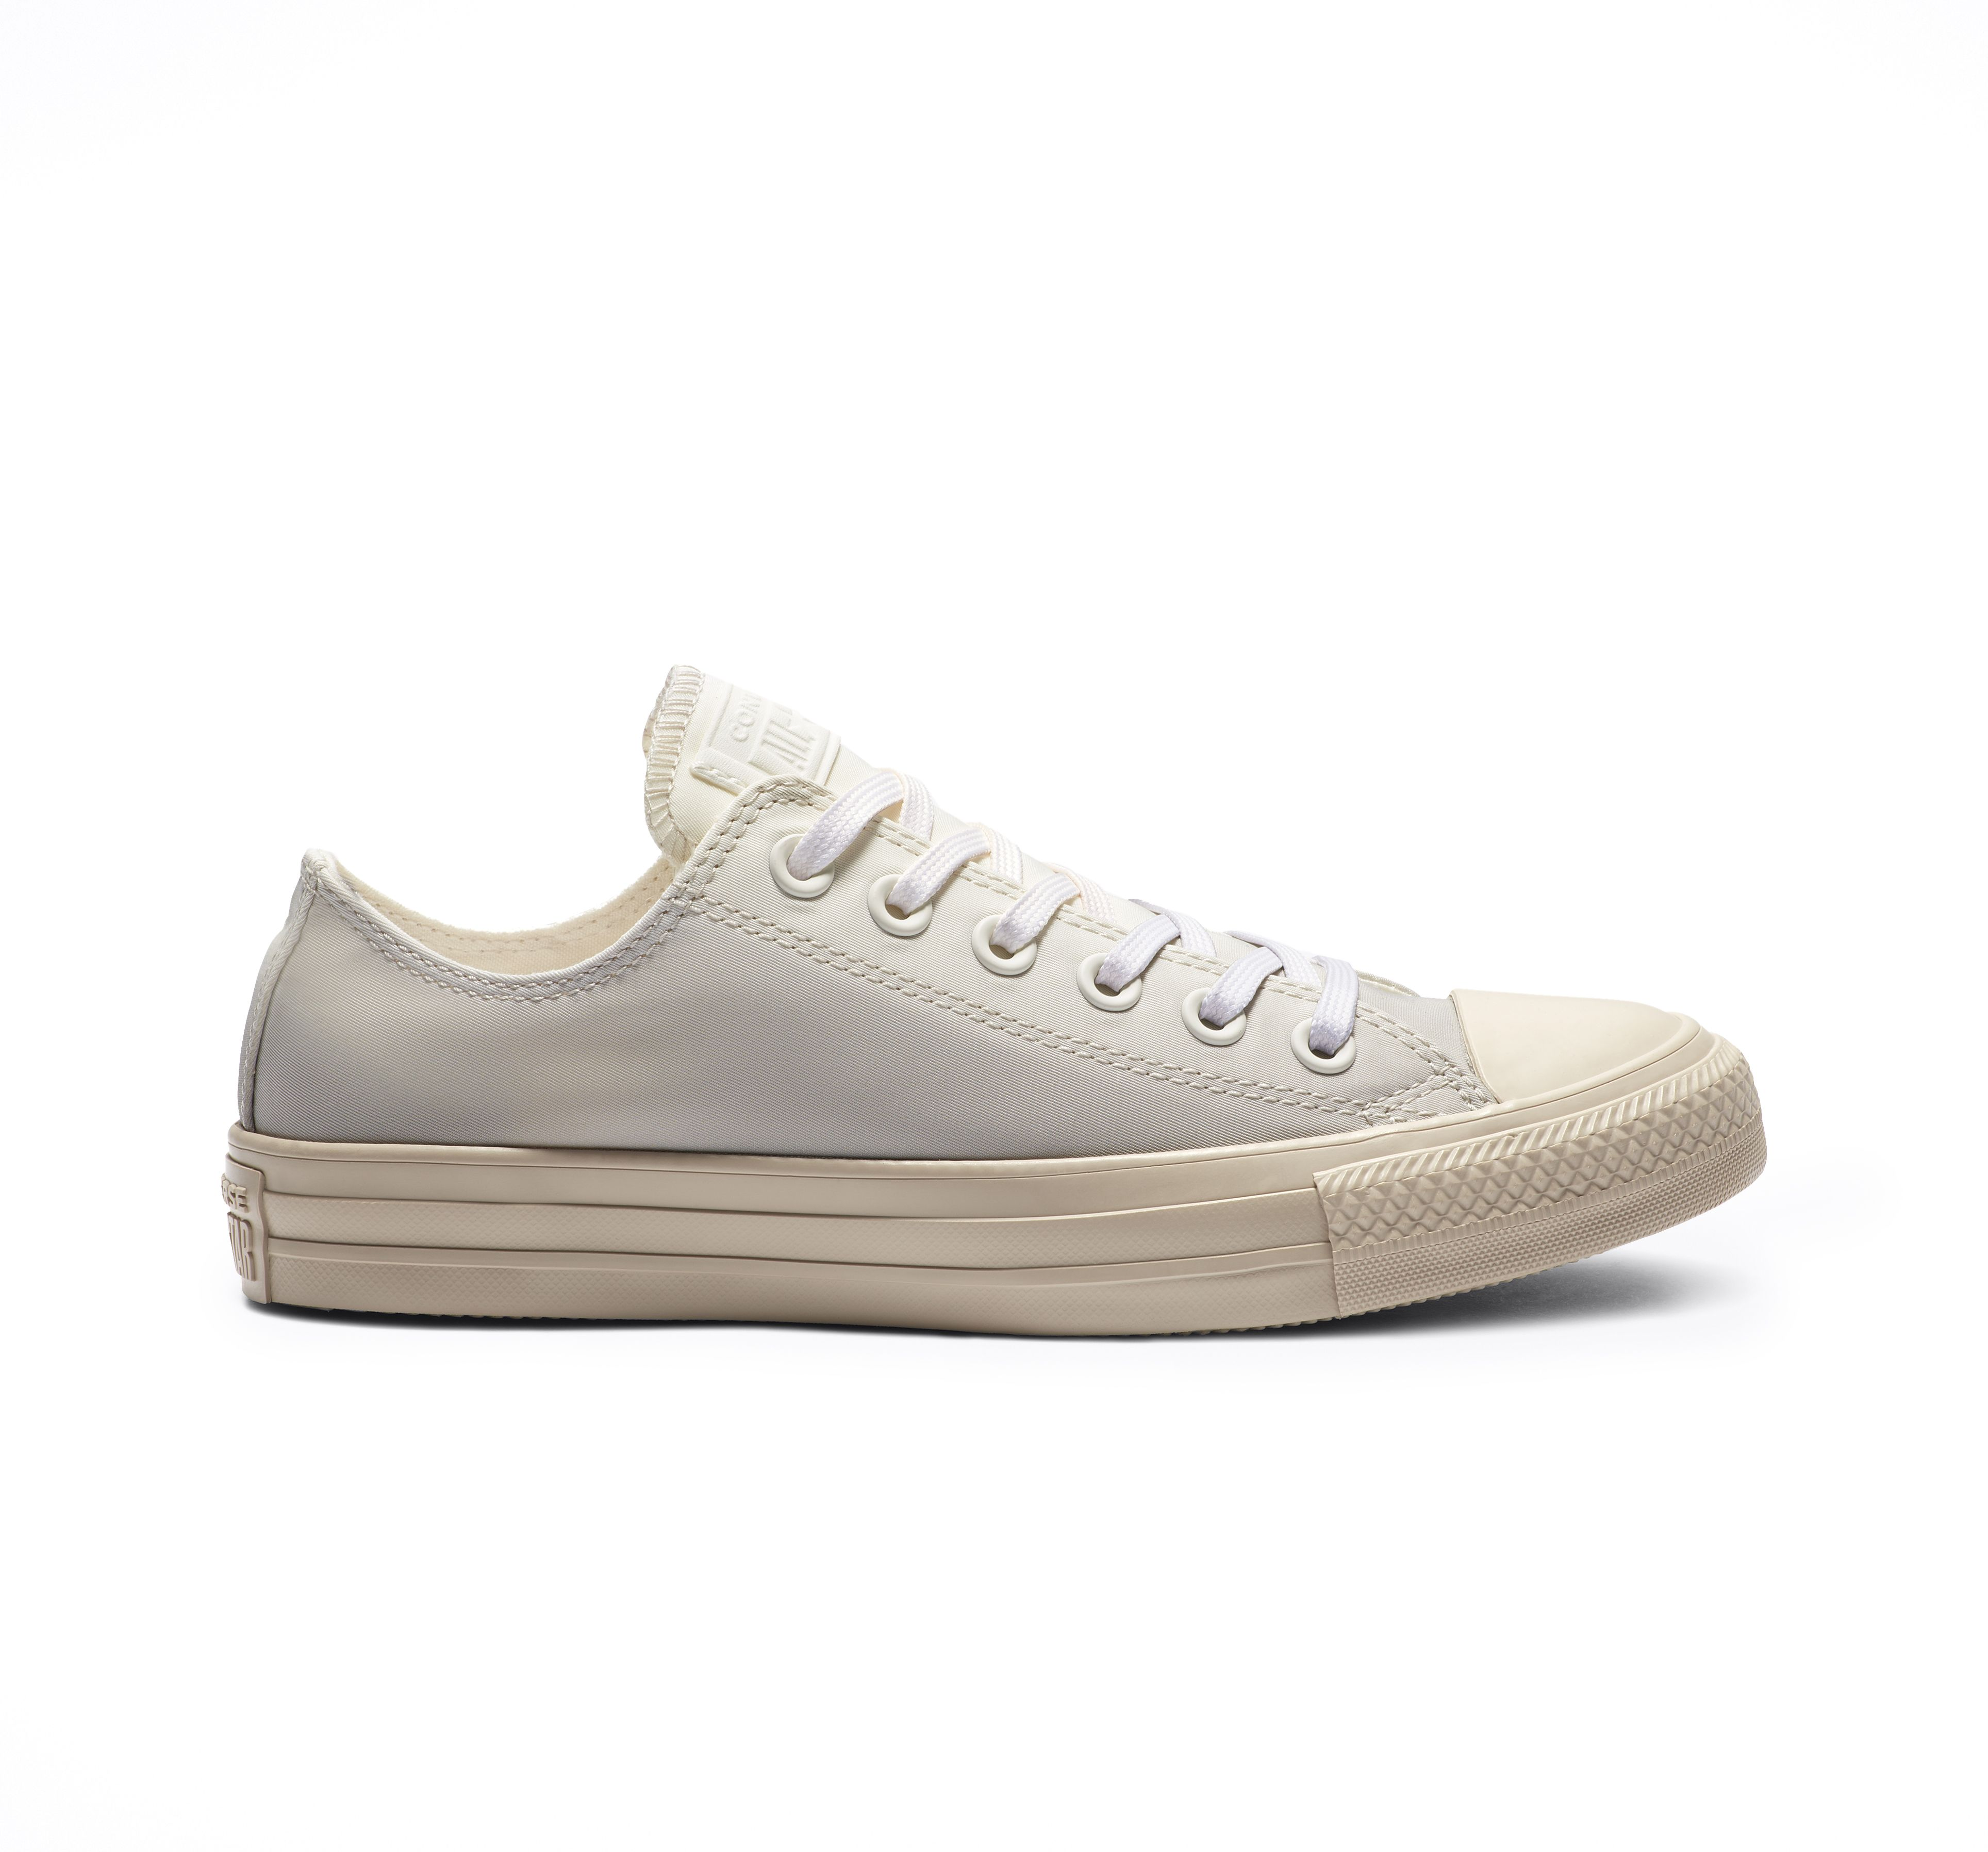 f8af471a8fbb0 Chuck Taylor All Star Dip Dye Low Top in 2019 | Products | Chuck ...